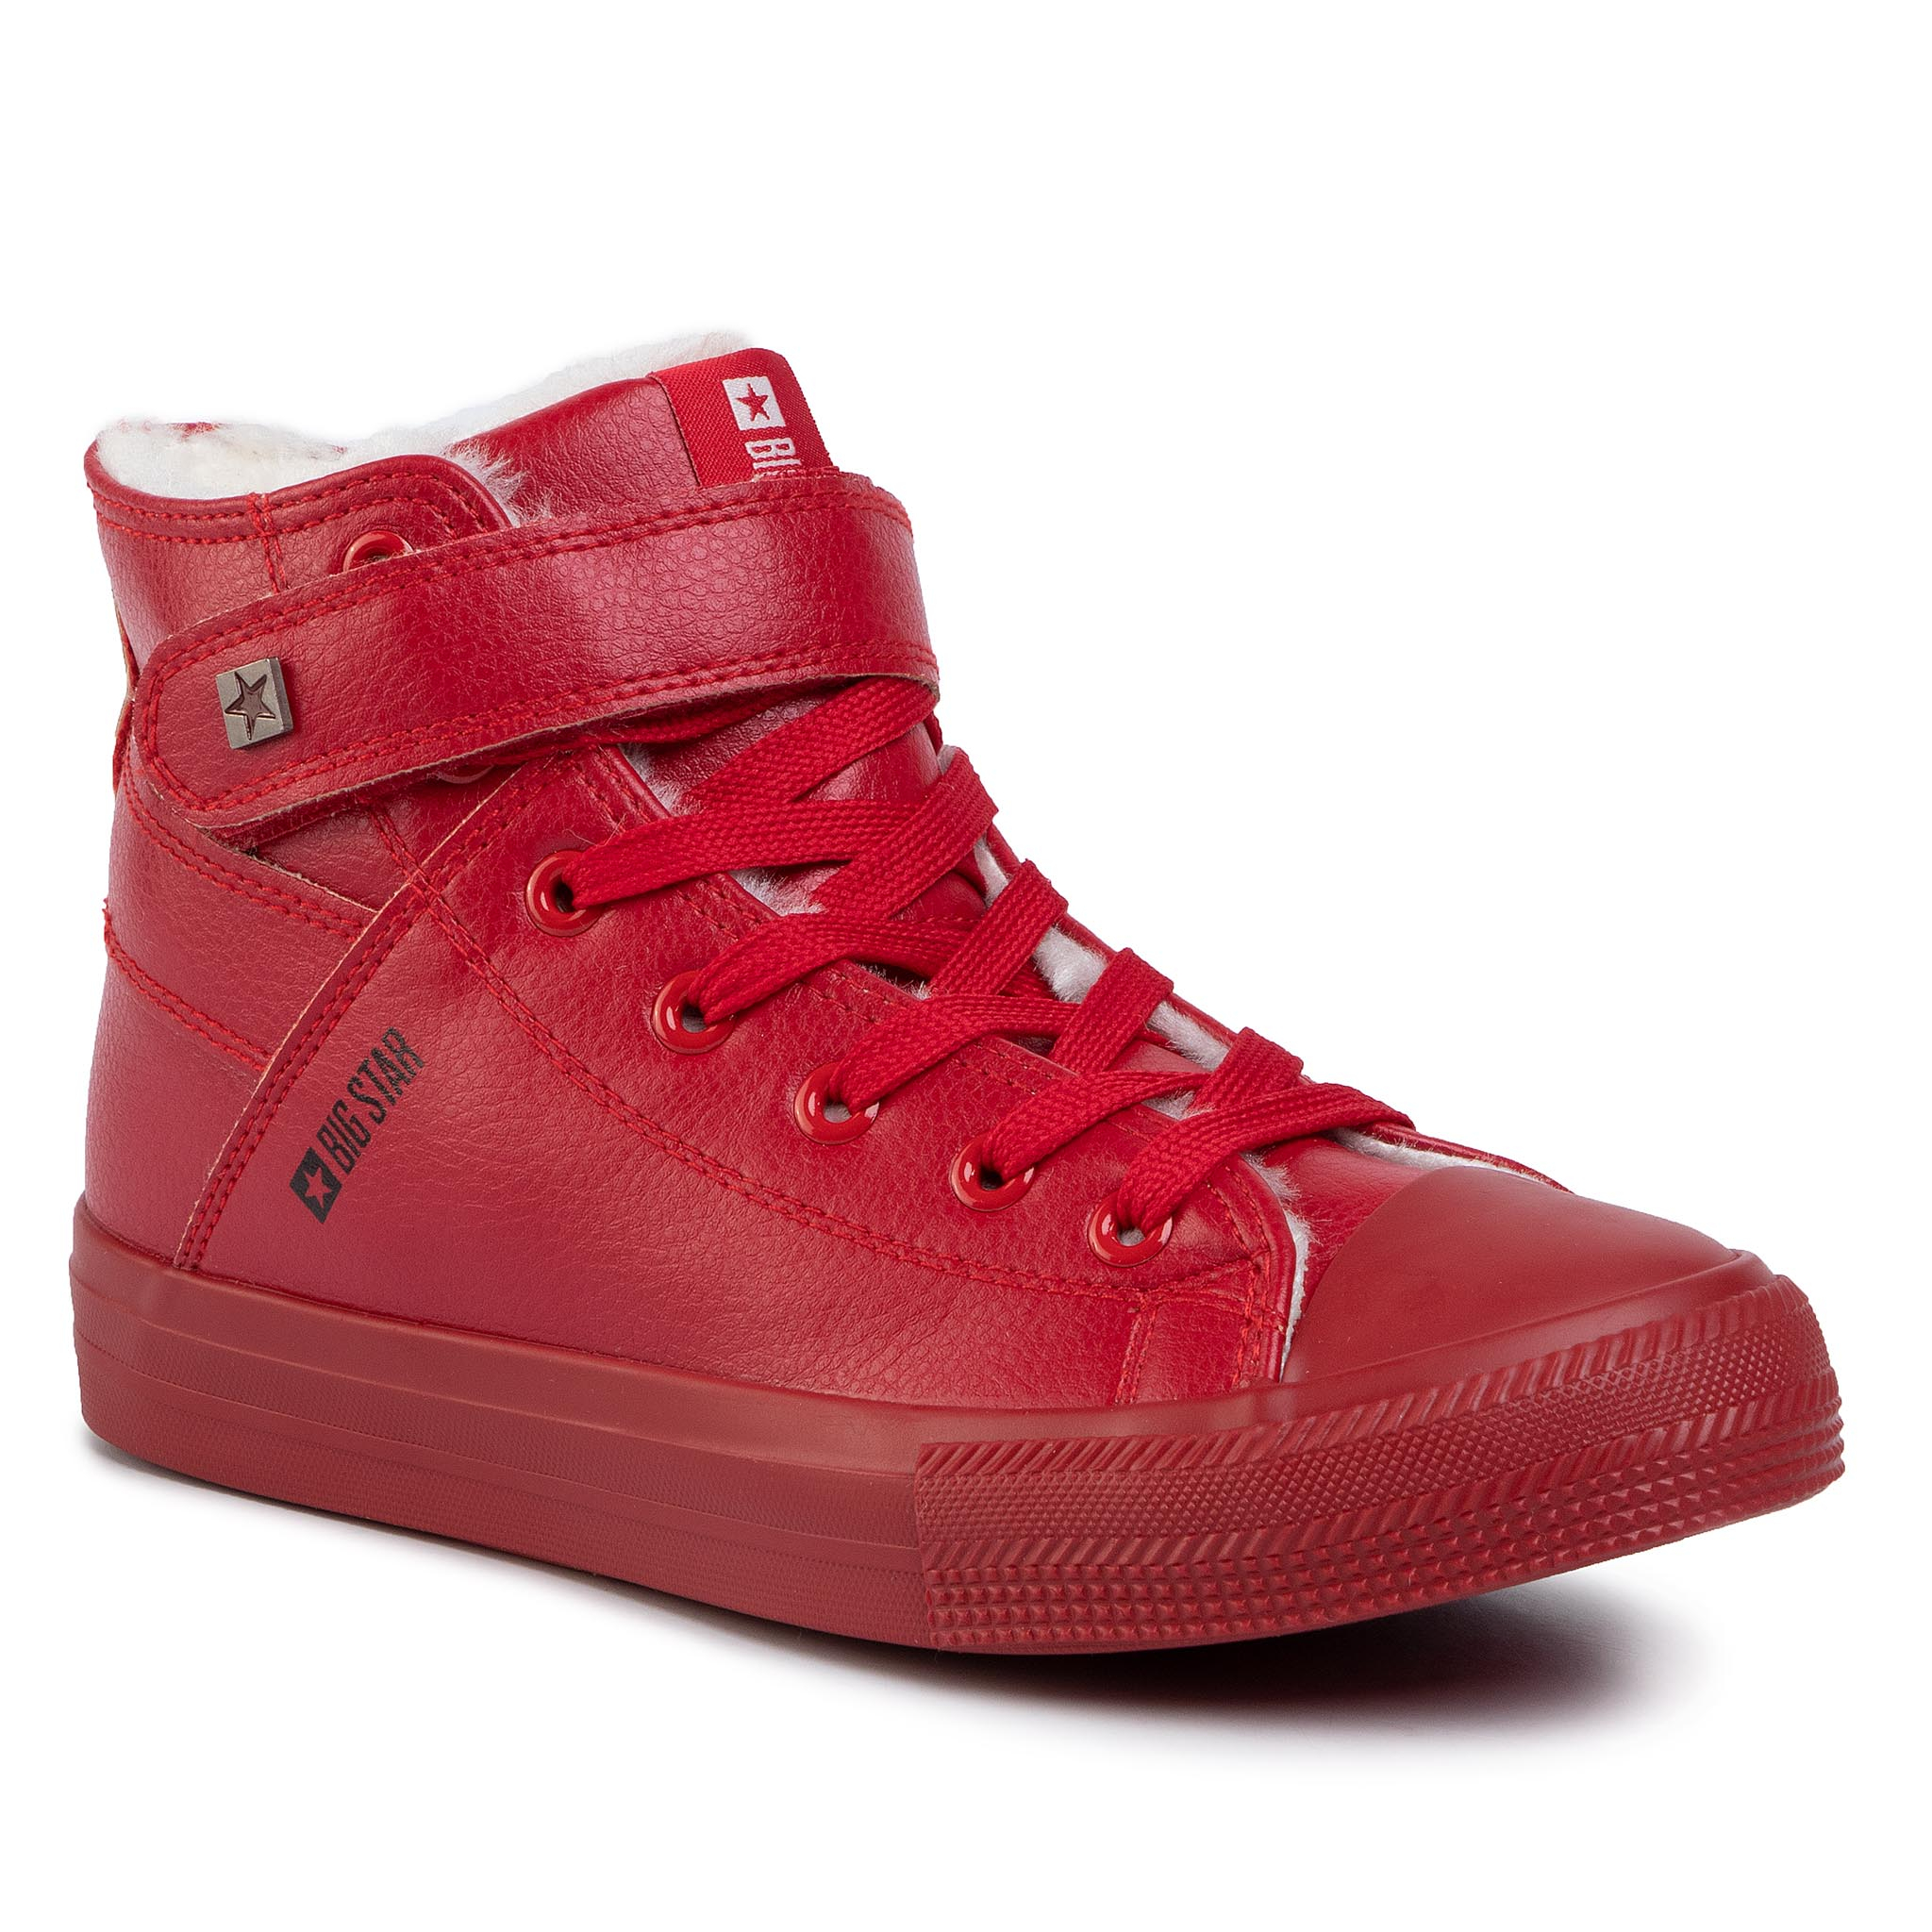 BIG STAR V274529FW19 Red